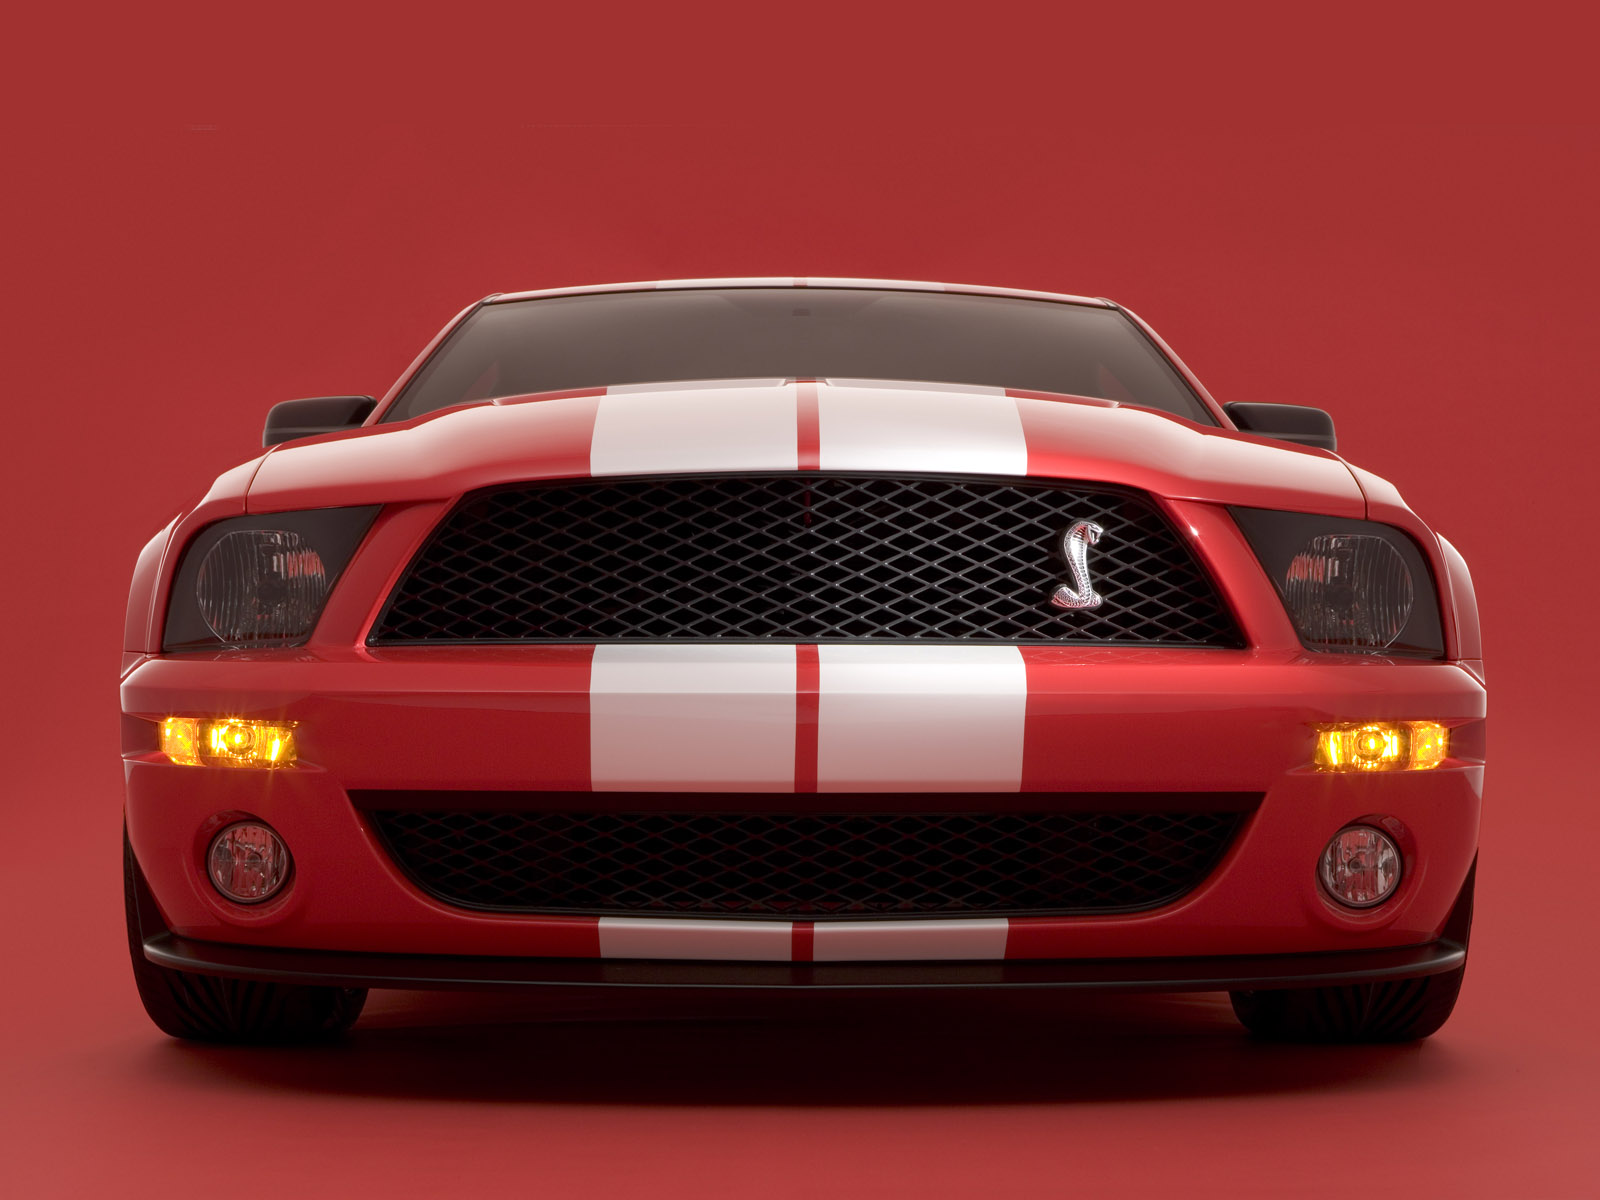 2005 shelby cobra gt500 concept saleen owners and enthusiasts club soec aiding the. Black Bedroom Furniture Sets. Home Design Ideas